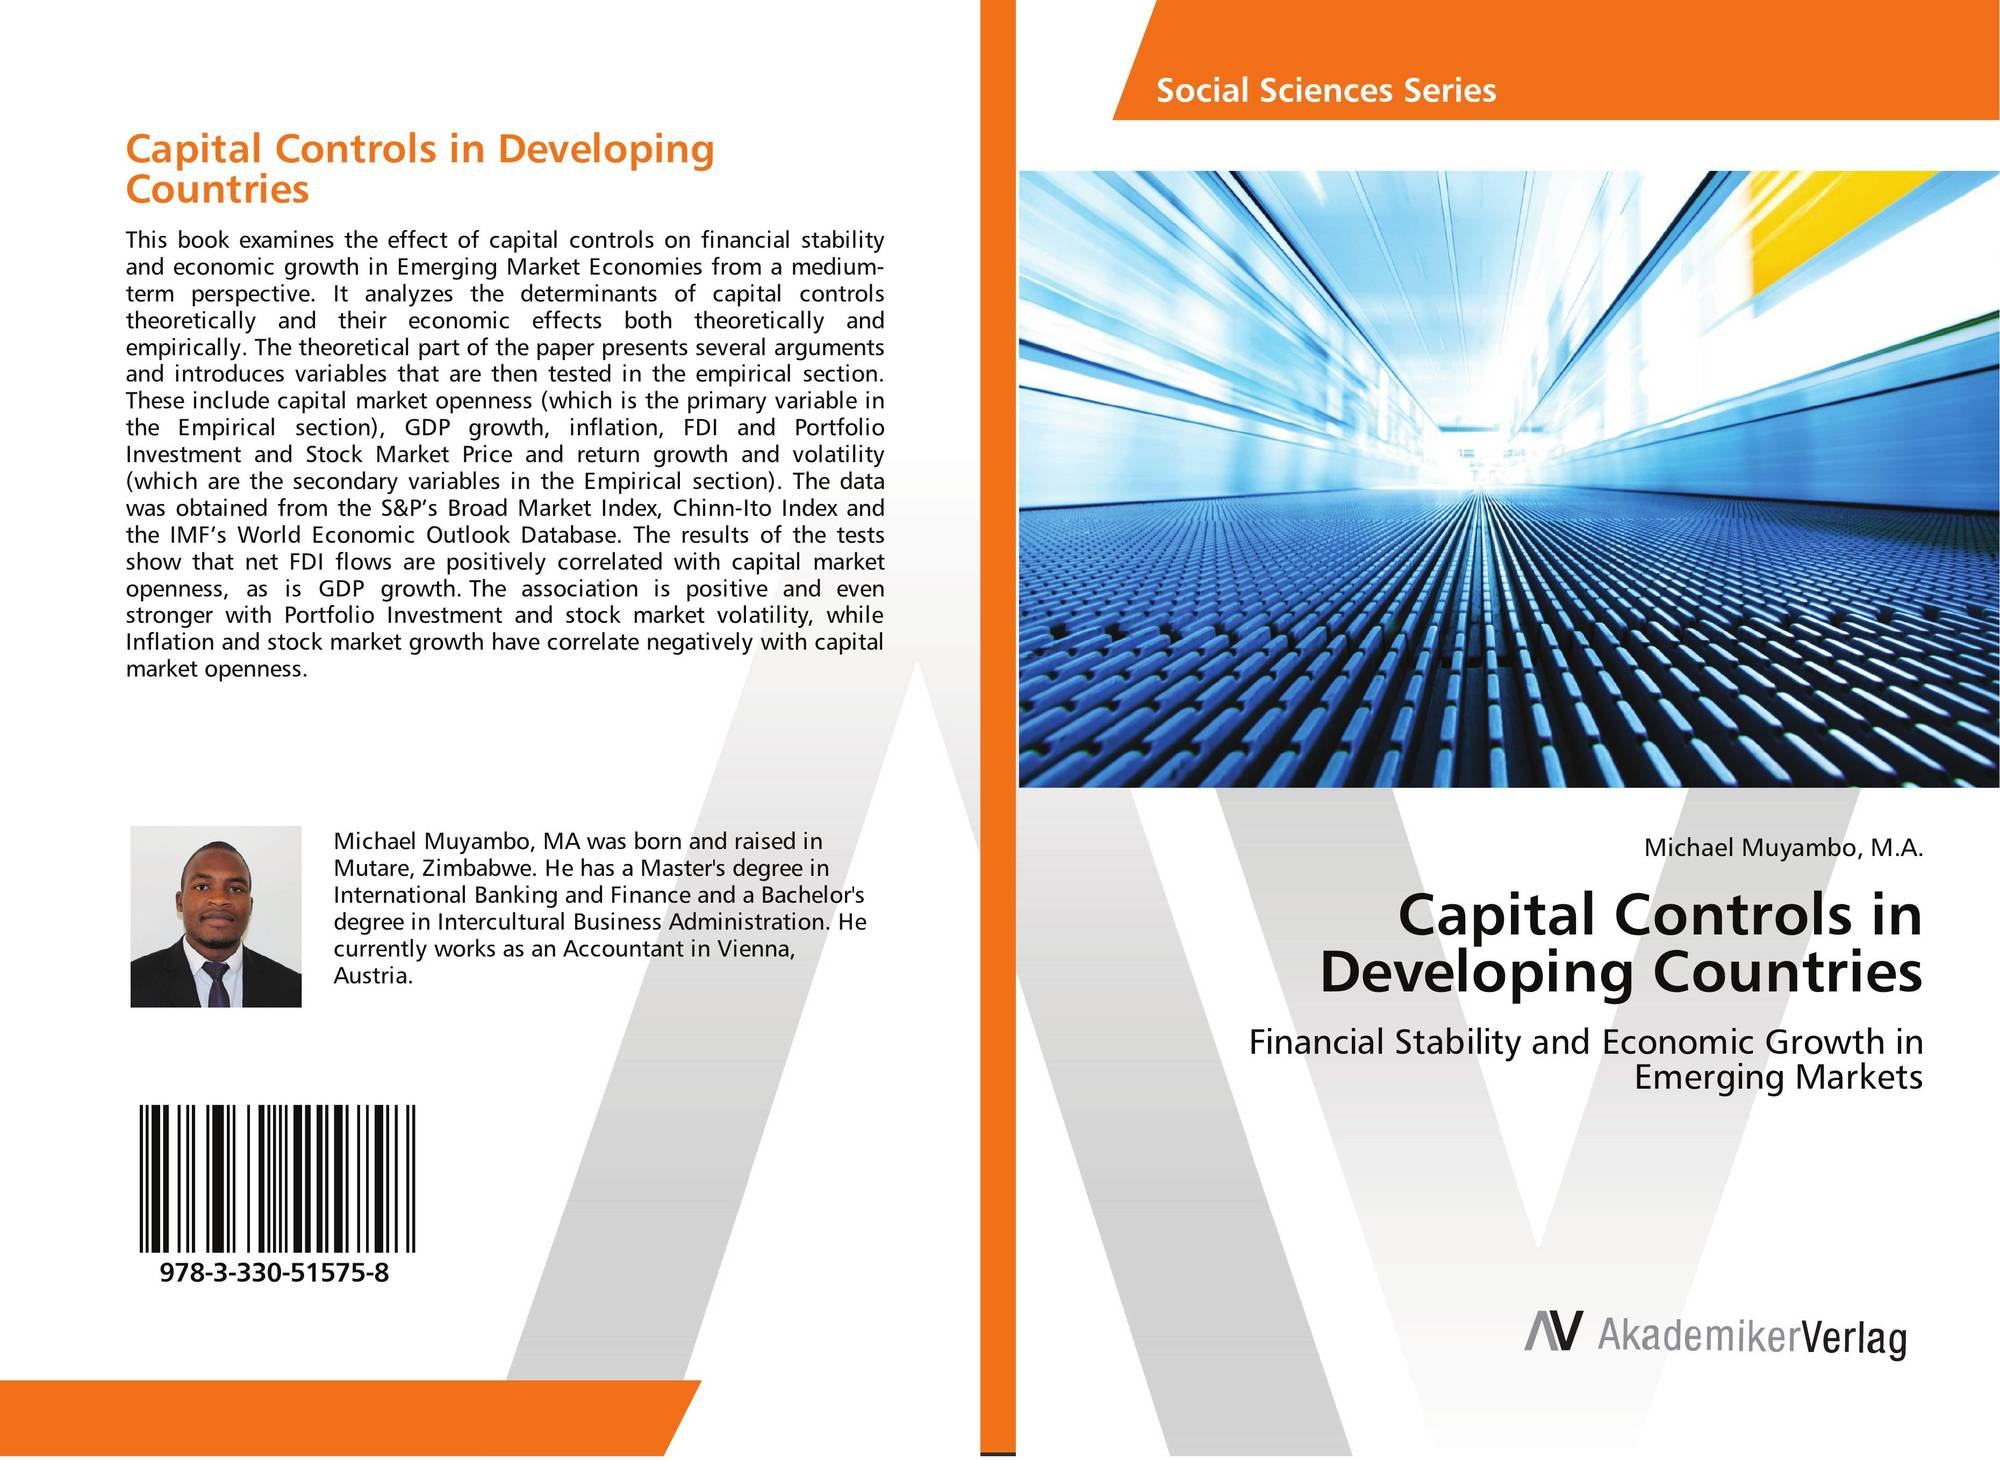 capital market and economic growth in rwanda economics essay Rwanda's long-term development goals are defined in vision 2020, a strategy that seeks to transform the country from a low-income, agriculture-based economy to a knowledge-based, service-oriented economy with middle-income country status by 2020.